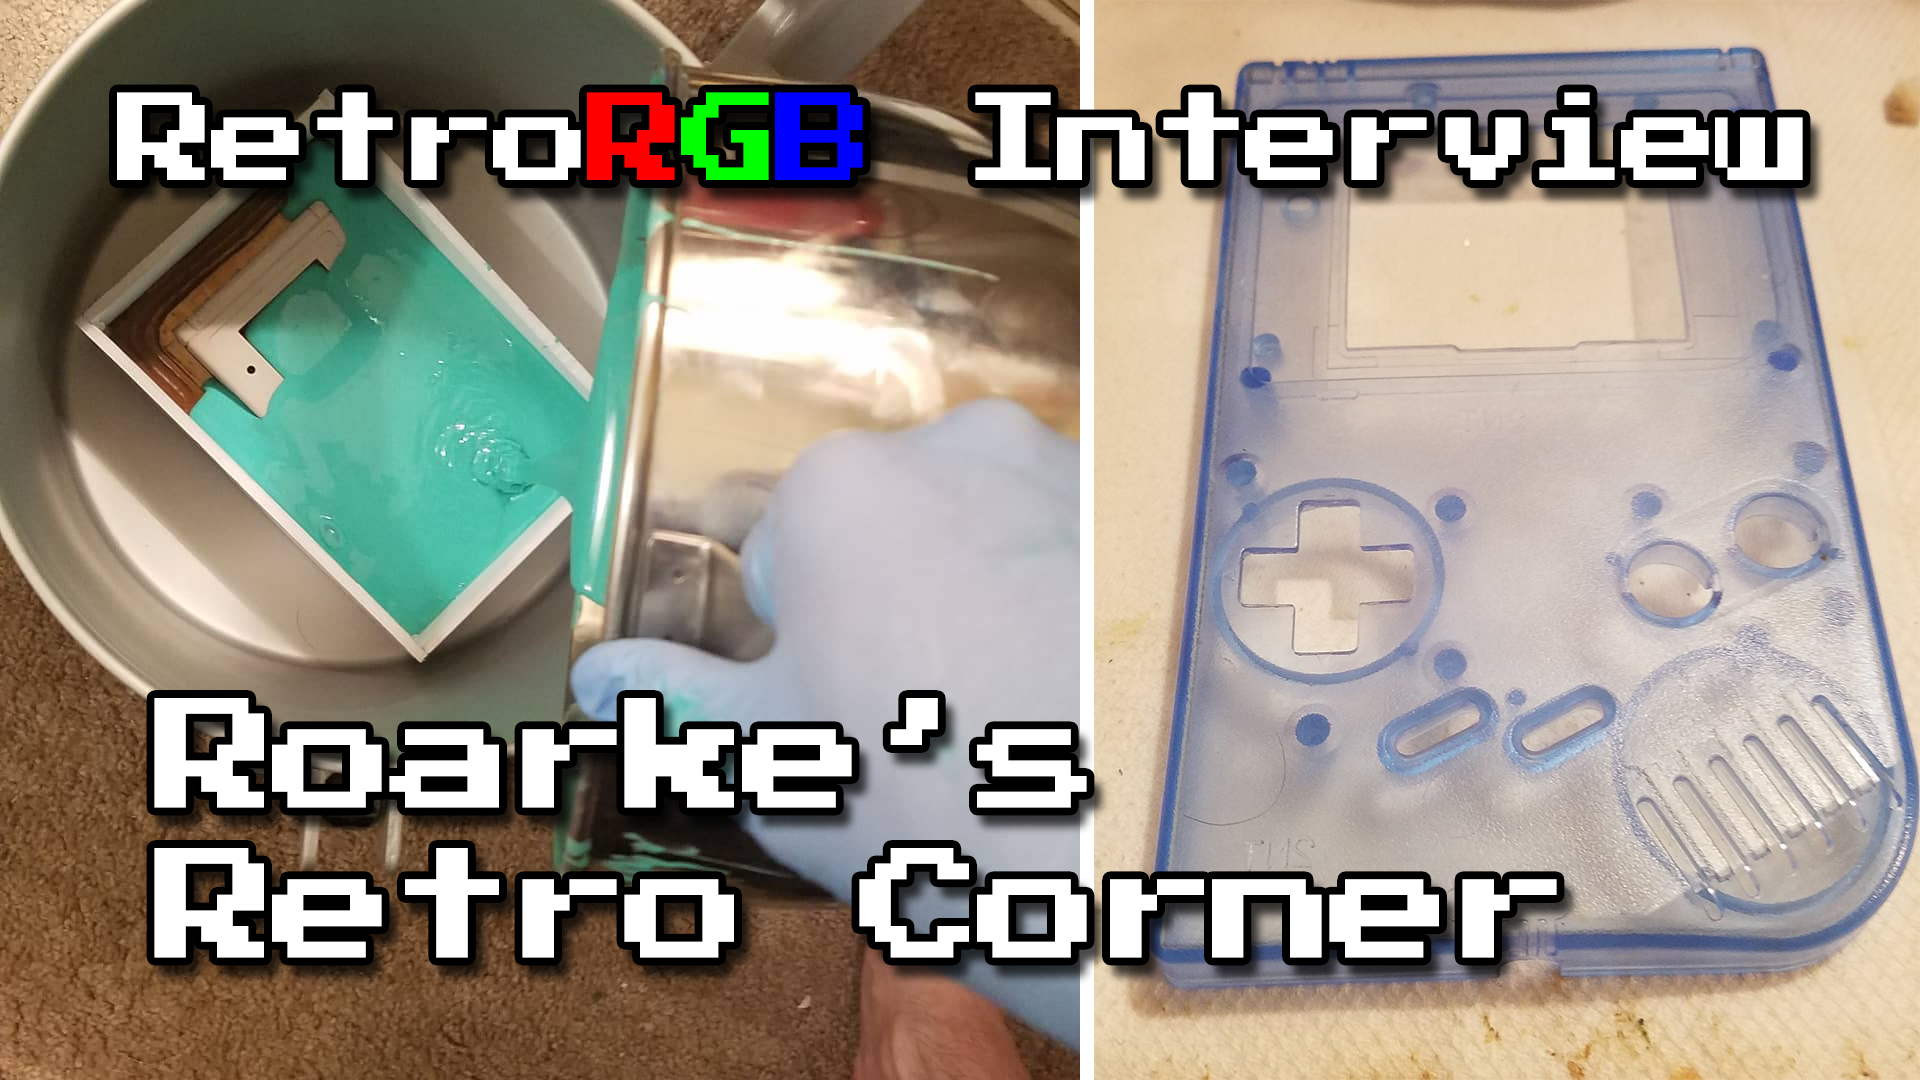 Interview: Roarke's Retro Corner